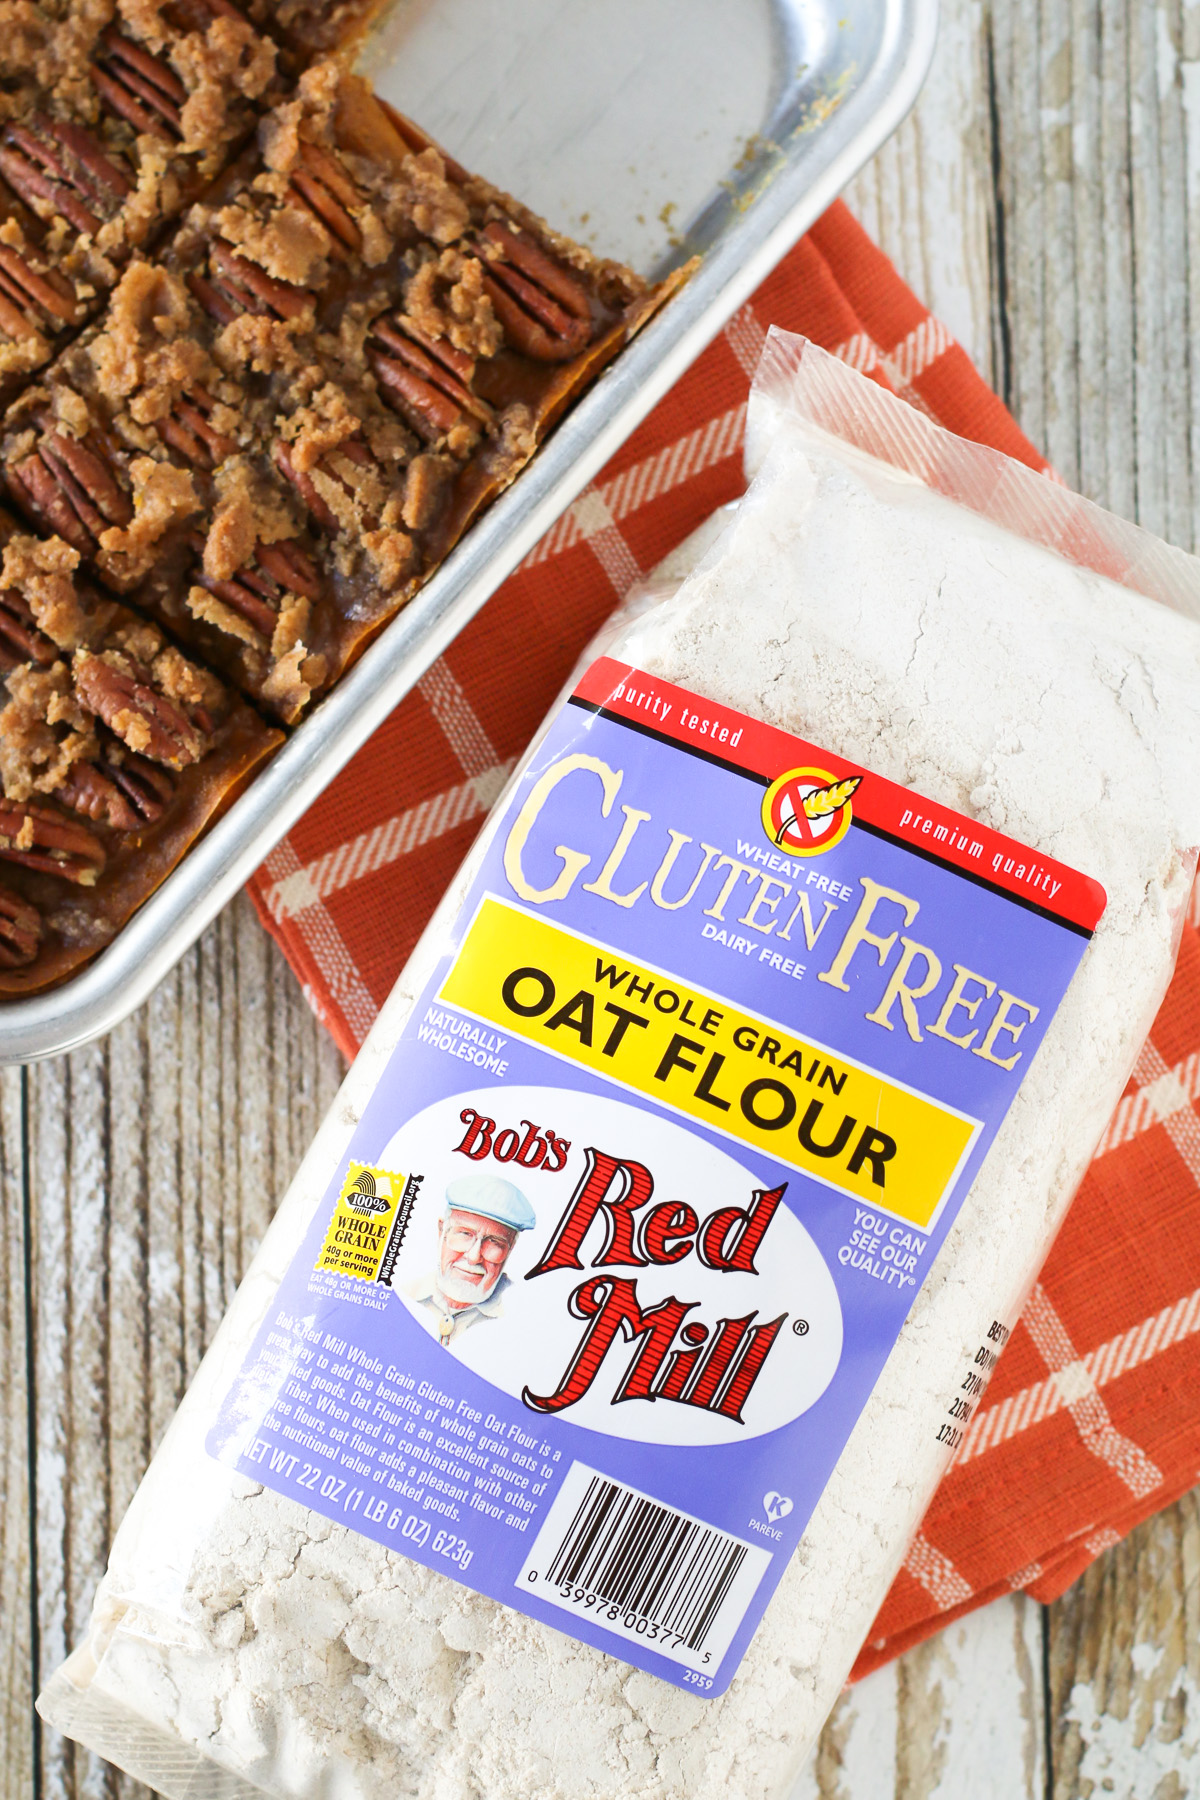 Gluten Free Vegan Pecan Pumpkin Pie Bars. Oat crust made with Bob's Red Mill gluten free oat flour, creamy pumpkin filling and sugar crumble pecan topping.